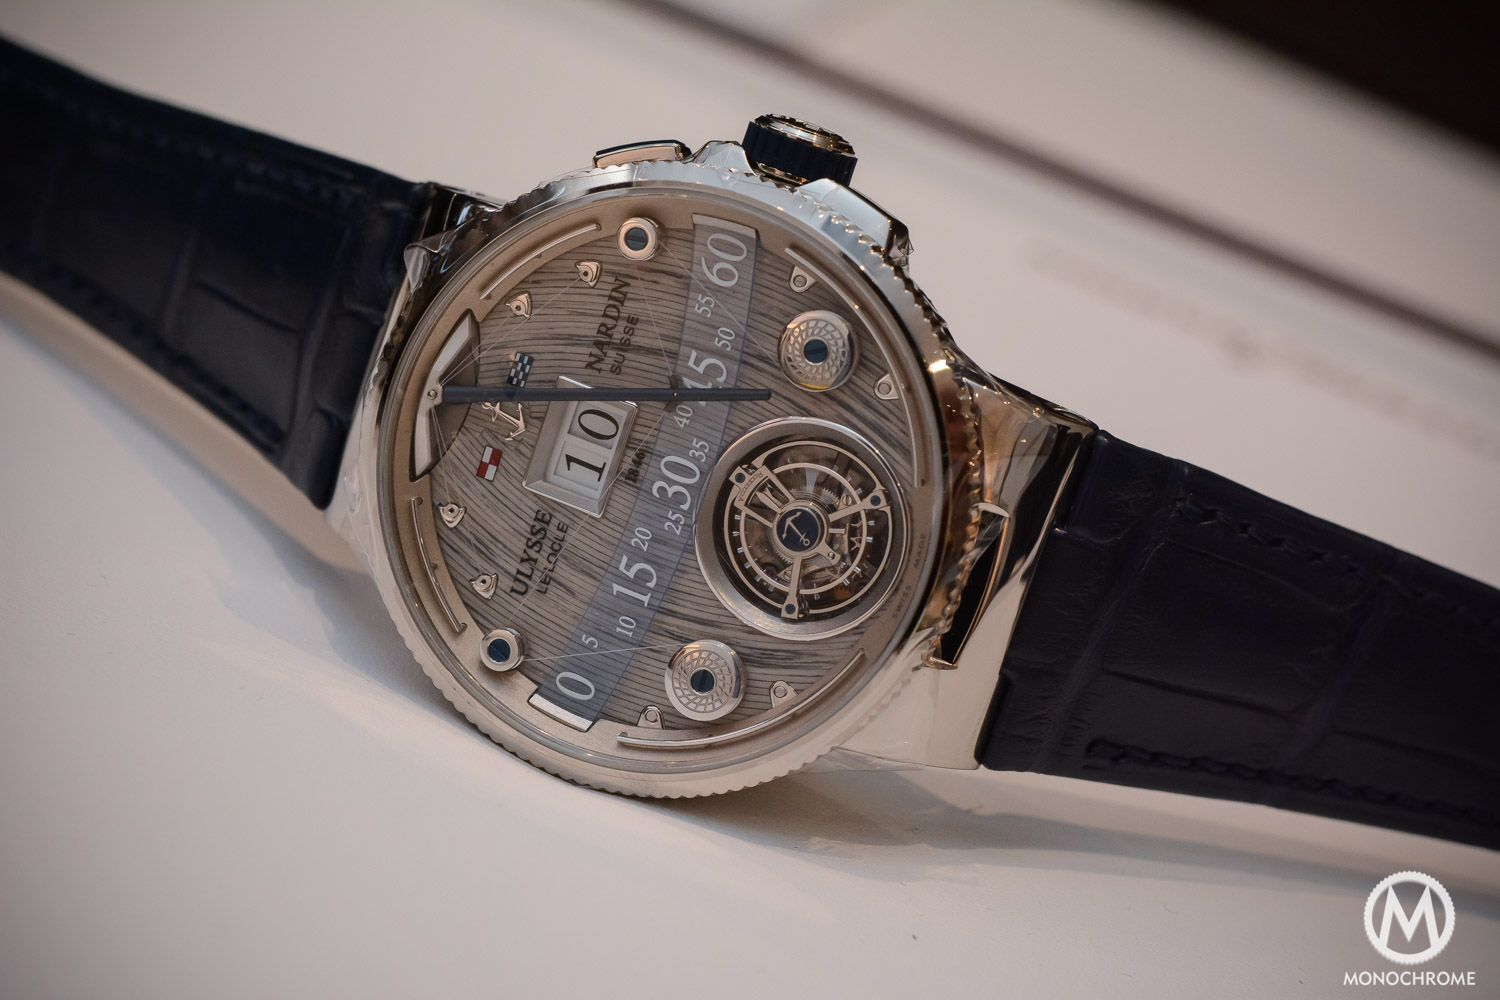 Ulysse Nardin Grand Deck Marine Tourbillon copy watch